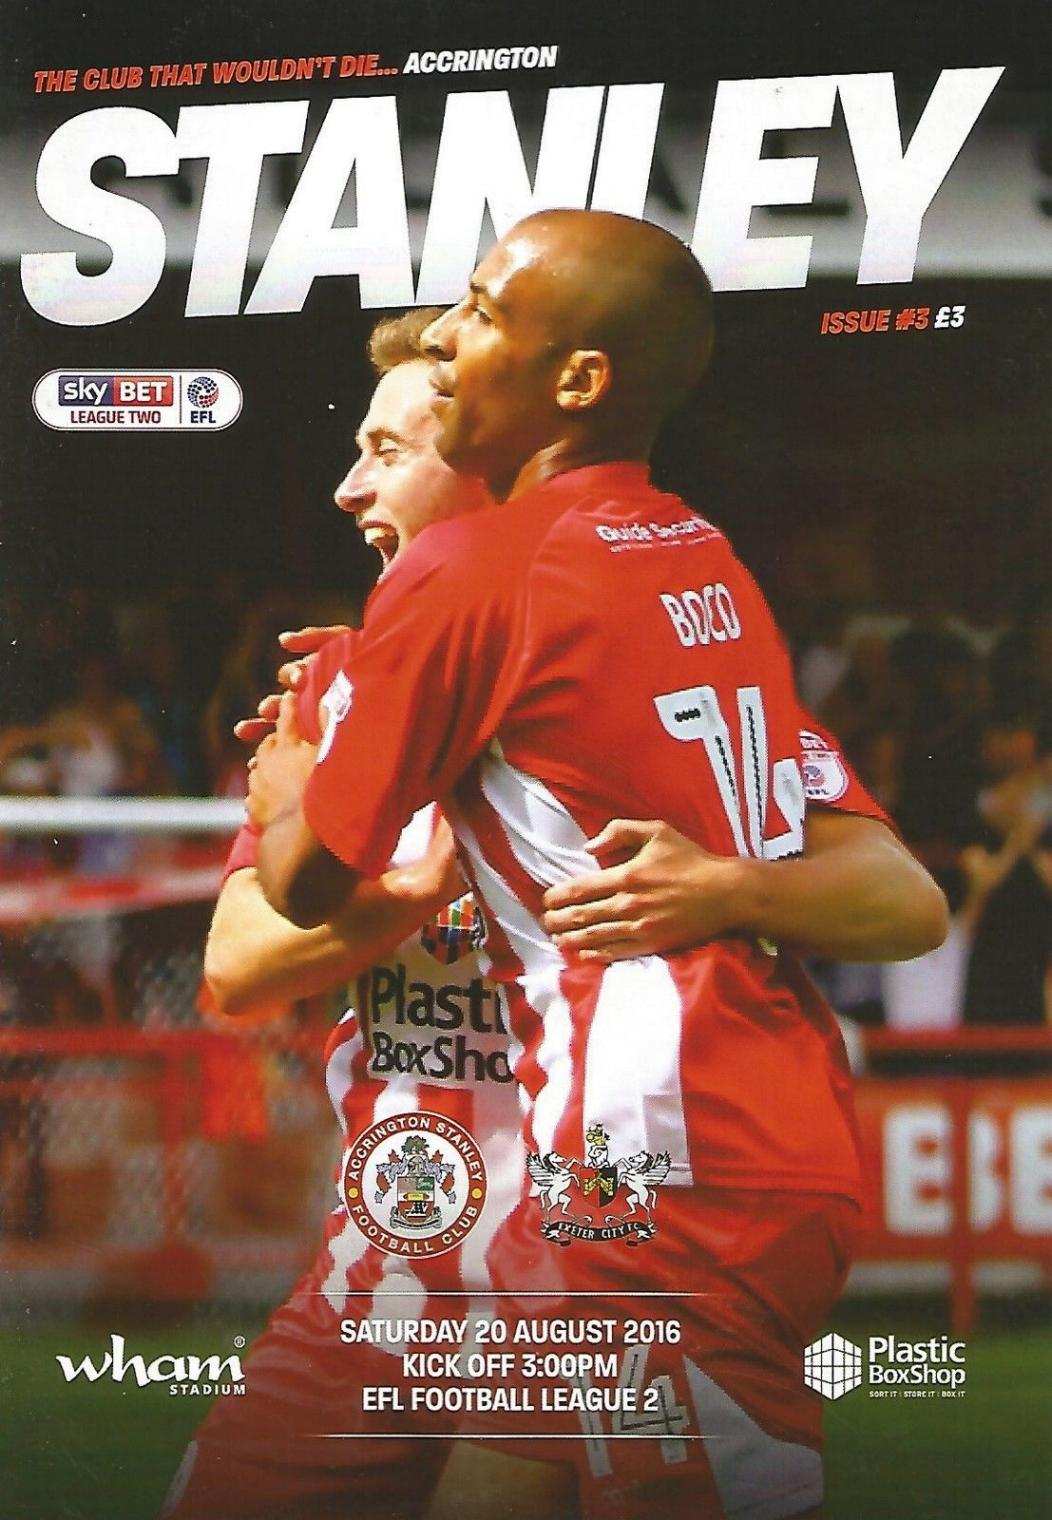 ACCRINGTON STANLEY v EXETER CITY 2016/17